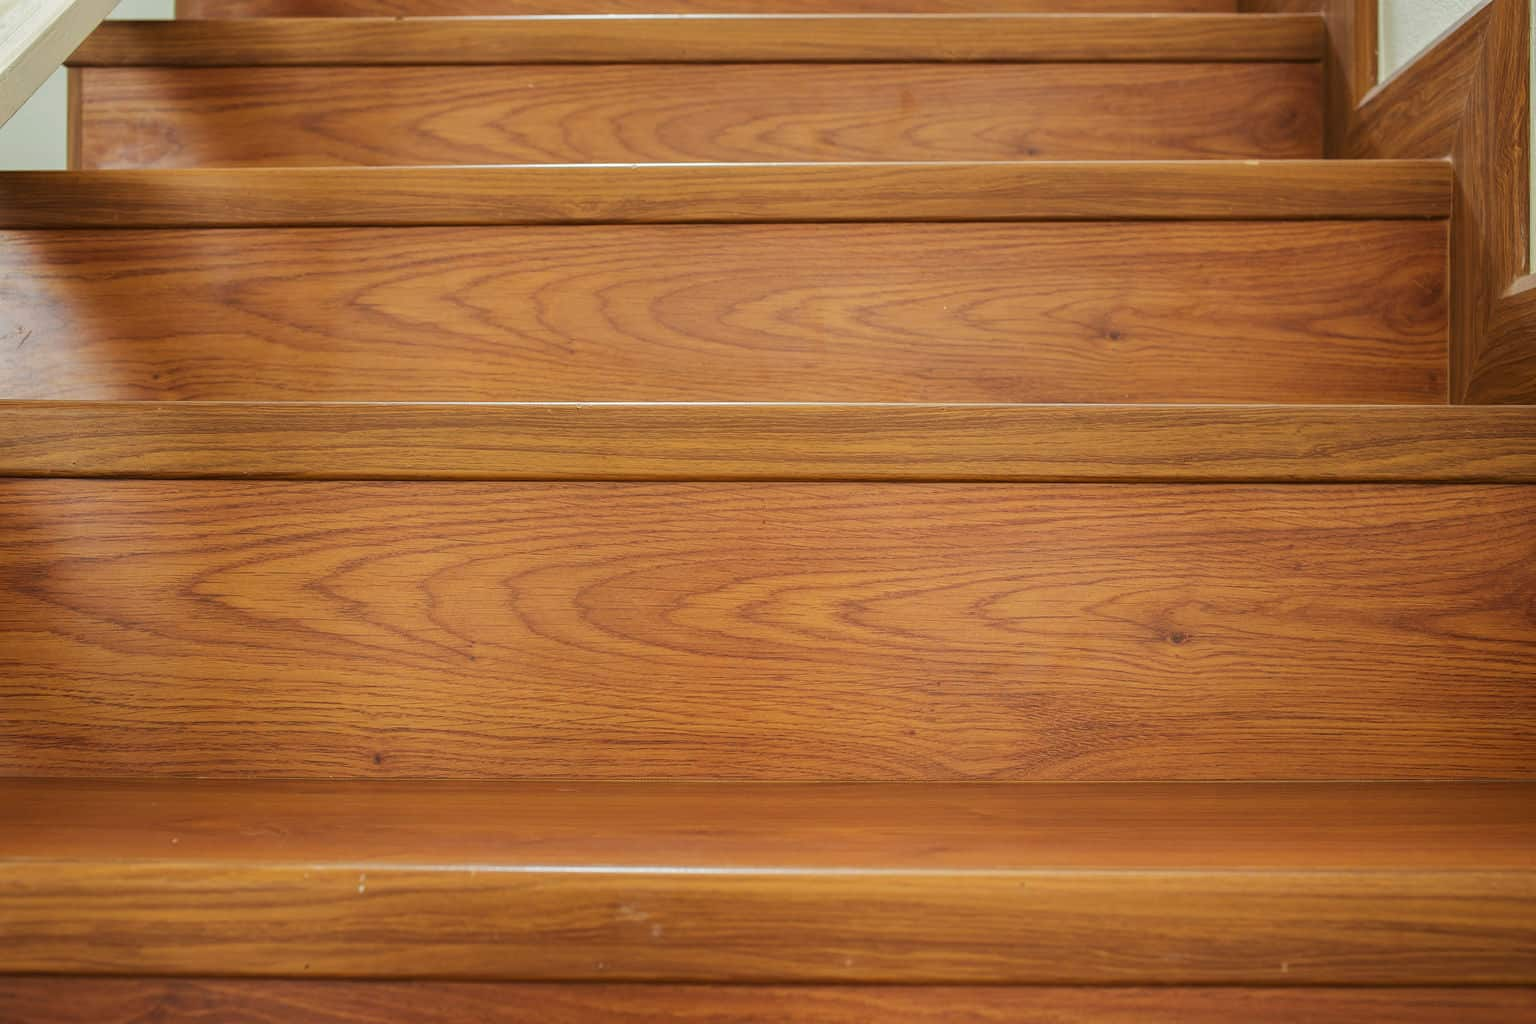 Laminate Flooring On Stairs how to install laminate flooring on stairs Laminate Is One Of The Easiest Floors To Install On Stairs